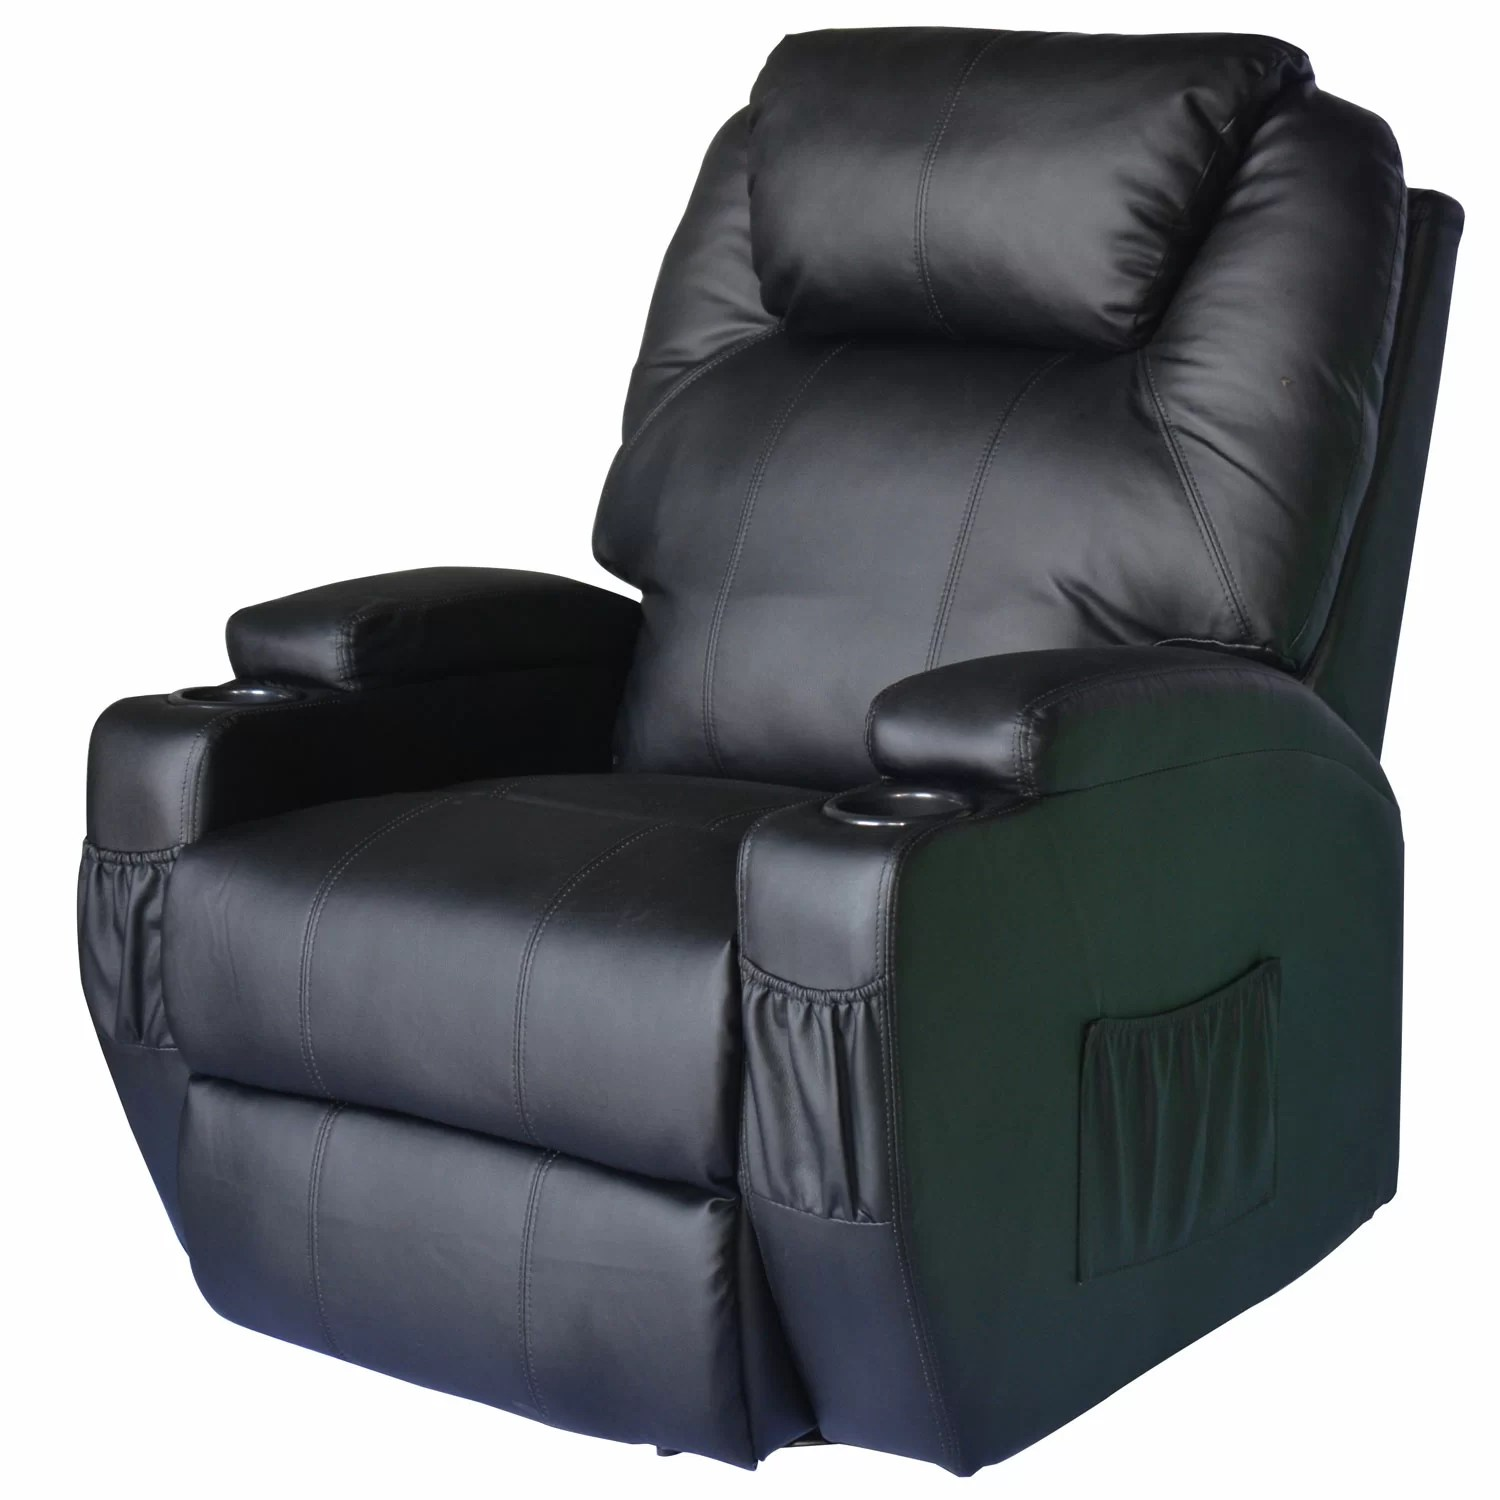 lazy boy massage chair revolving for sale in lahore outsunny homcom deluxe heated vibrating vinyl leather